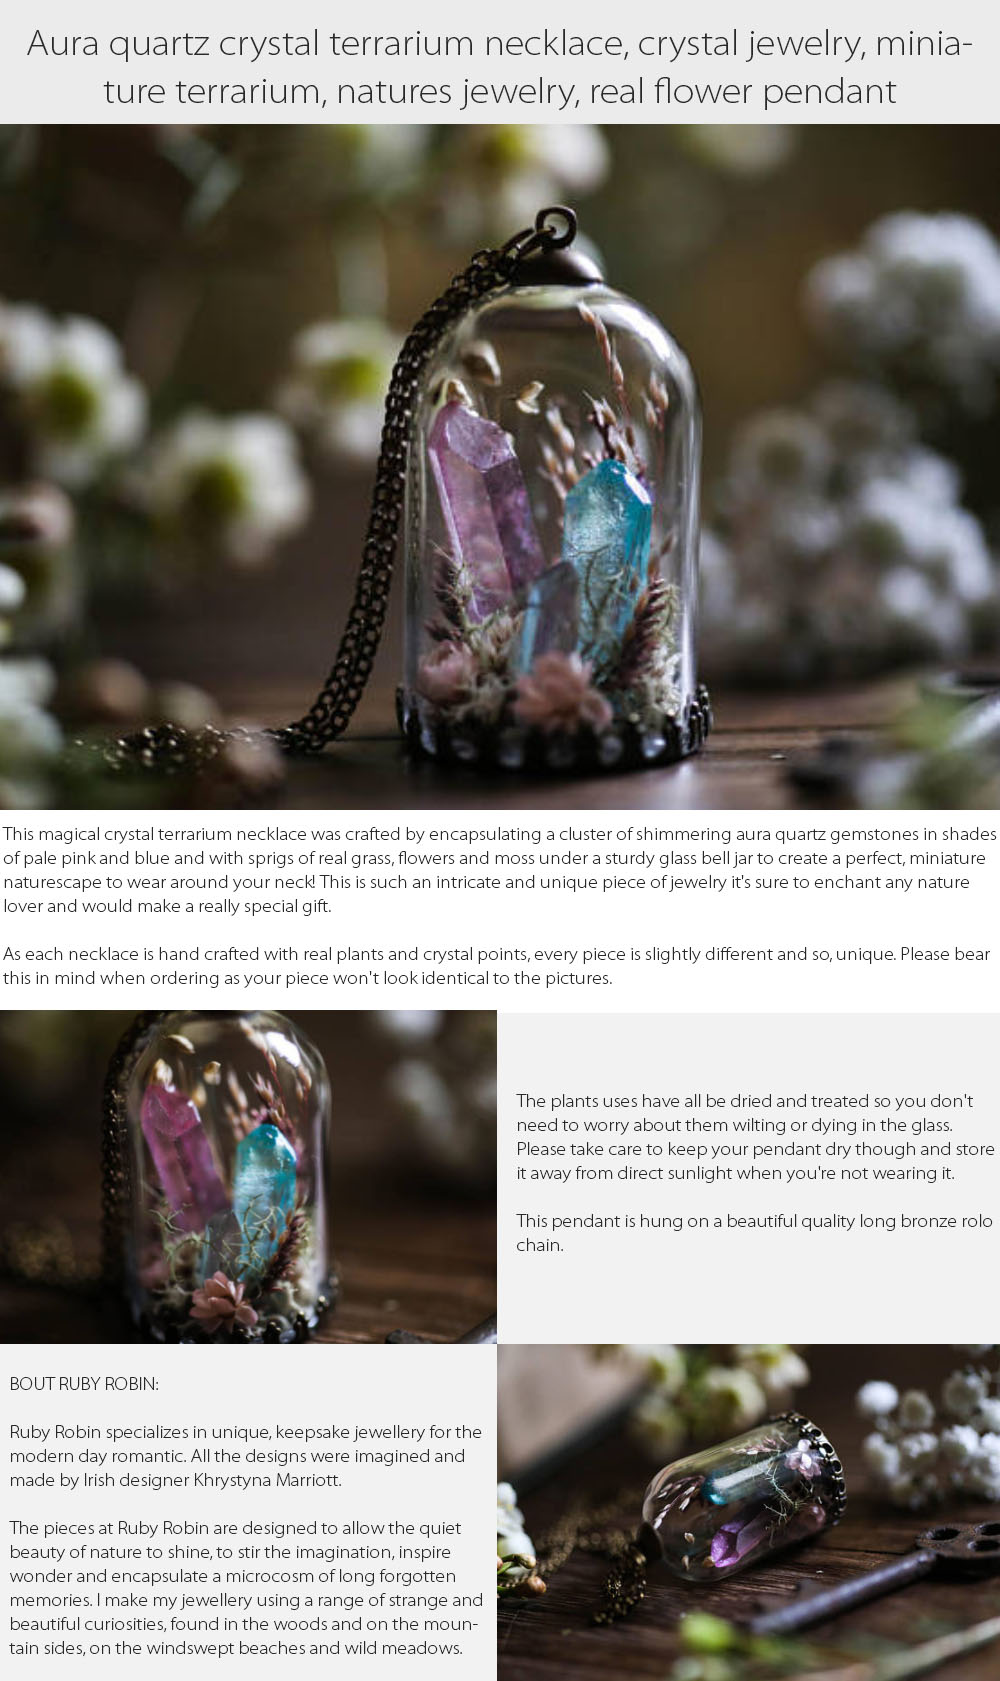 Aura Quartz Crystal Terrarium Necklace Miniature Terrarium